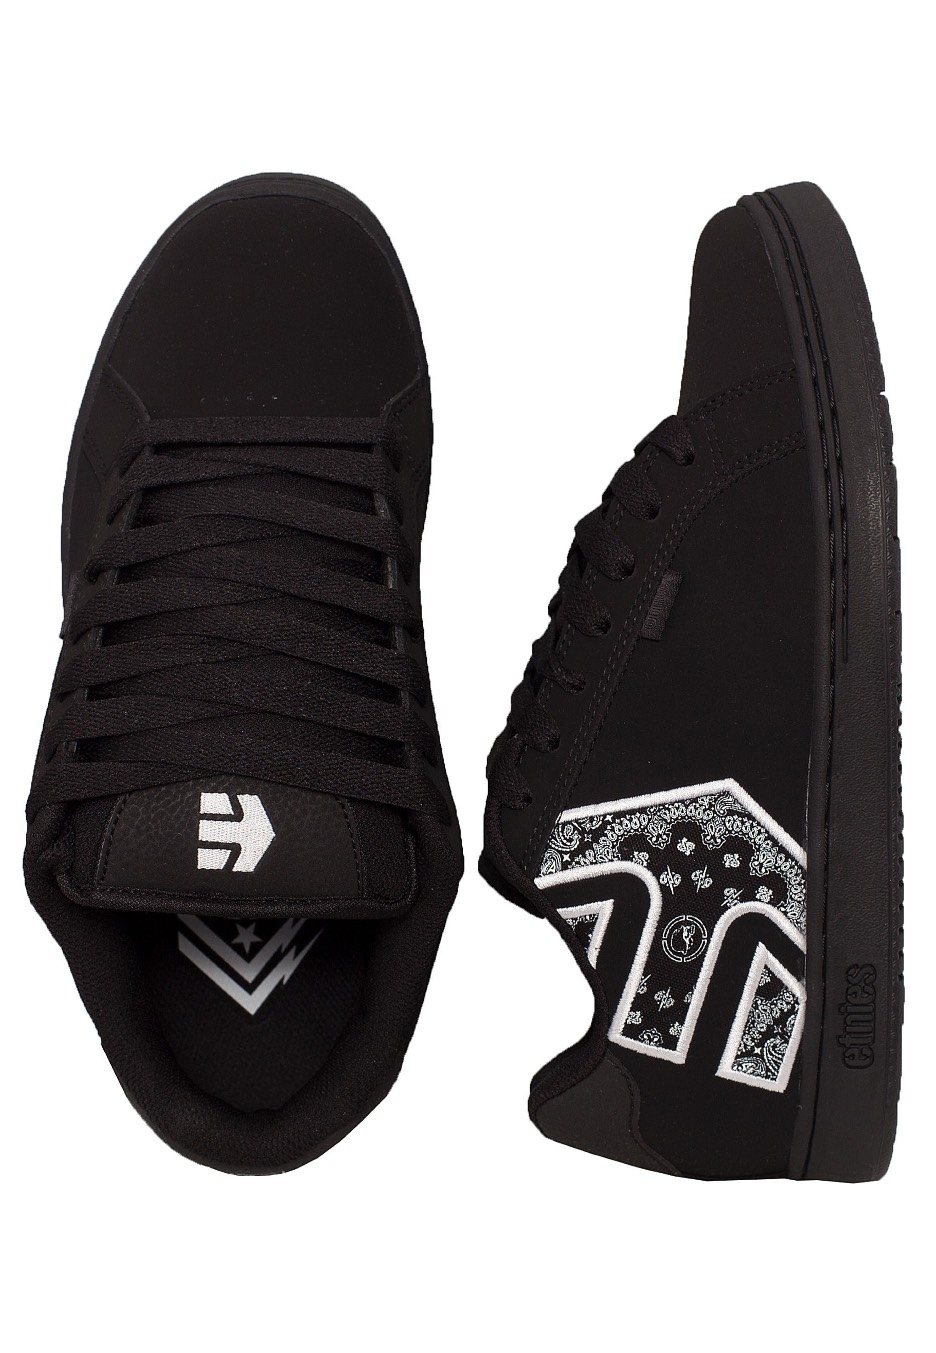 full range of specifications classic shoes promotion Etnies - Metal Mulisha Fader Black/White/Black - Shoes